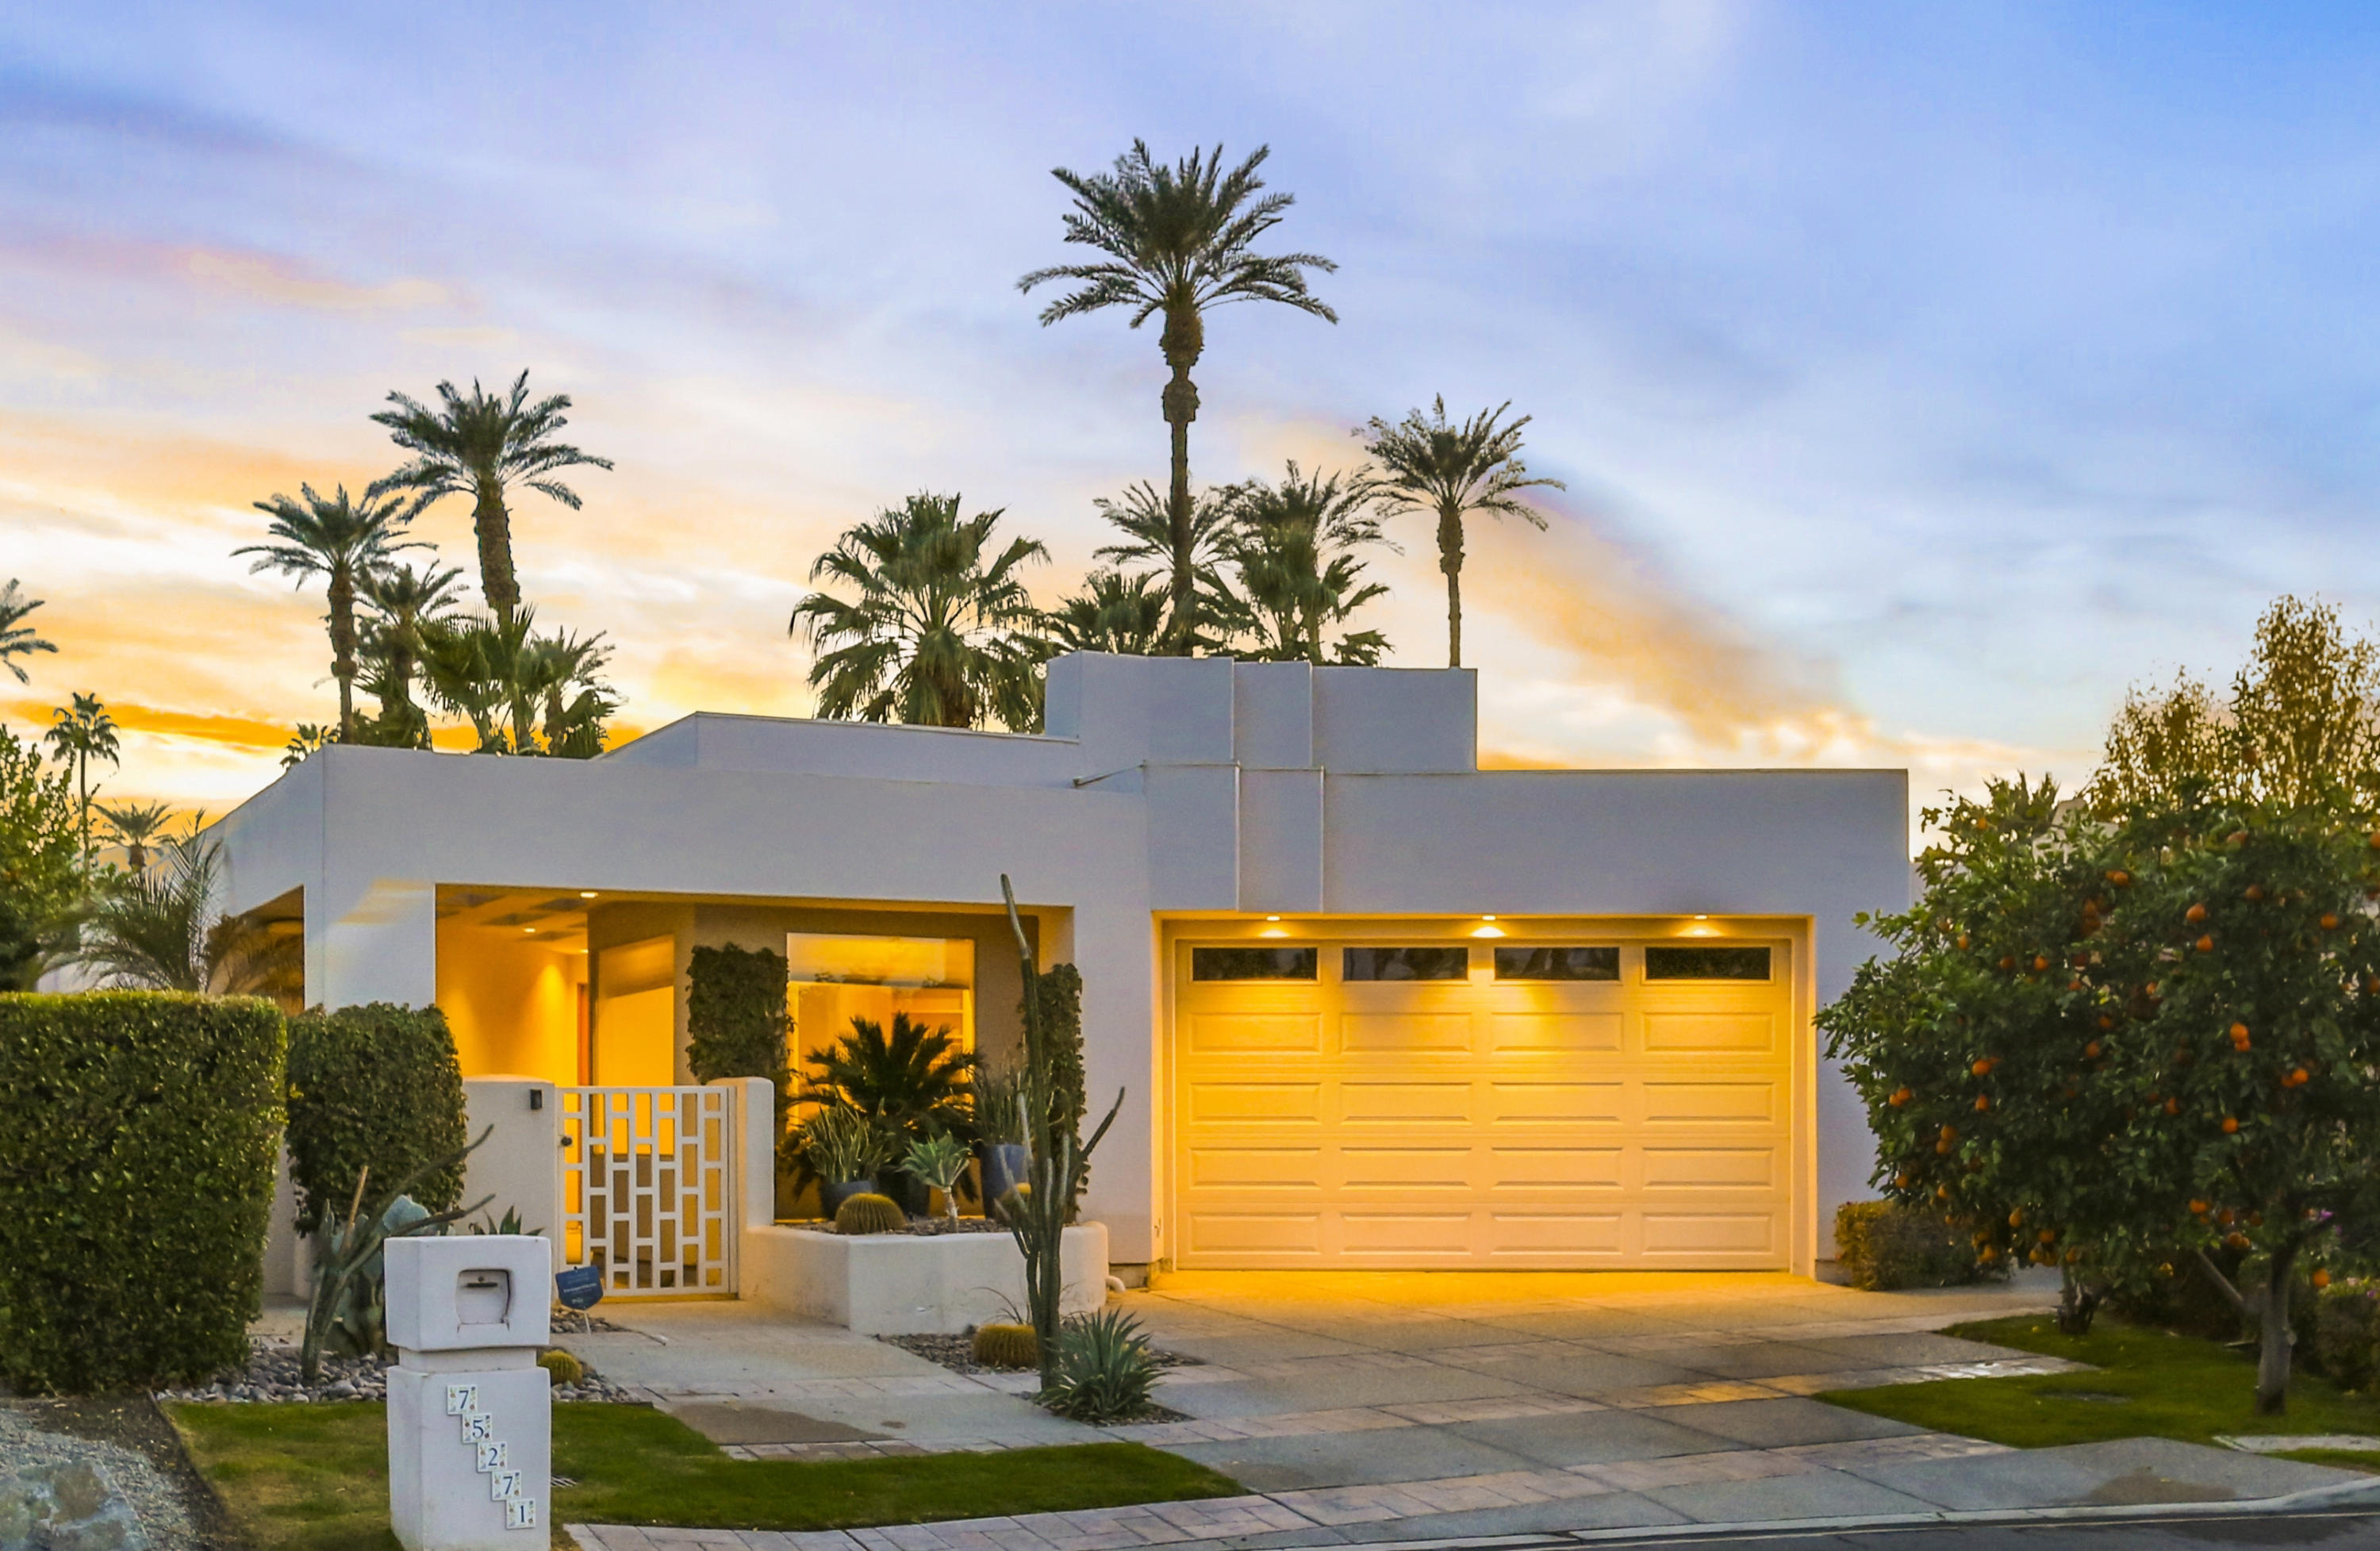 Stunning custom architectural beauty in a quiet area of one of the most sought-after neighborhoods in Indian Wells.  Nearly 3,500 square foot home, with 4 bedrooms + den/office and 3 baths.  You enter the expansive living room with soaring high ceilings which opens to the wet bar, and beyond is the kitchen and dining room.  Kitchen features stainless steel appliances, granite countertops and views overlooking the pool/backyard, and a large breakfast bar.   The living room features a multi-slide pocket door system to the pool patio, providing an indoor/outdoor experience, and a fully equipped wet bar near the kitchen.   Enjoy cocktails by your lap pool and spa, with a southwest facing view of the mountains from the beautifully landscaped backyard.  Master bedroom suite includes a fireplace, a huge walk-in closet, French doors to a secluded patio area, and an amazing bathroom with walk-in shower and separate soaking tub, also with views to the backyard and pool.  Guest bedrooms are carpeted, have high ceilings, and share a tiled bathroom with updated shower and granite countertops.  The office, located next to a full bathroom, has built-ins and a sitting area, but could easily be converted to a 4th bedroom.  This home also includes a full laundry room with lots of storage, and a 2-car garage.  This is a totally unique property which needs to be seen to be believed!